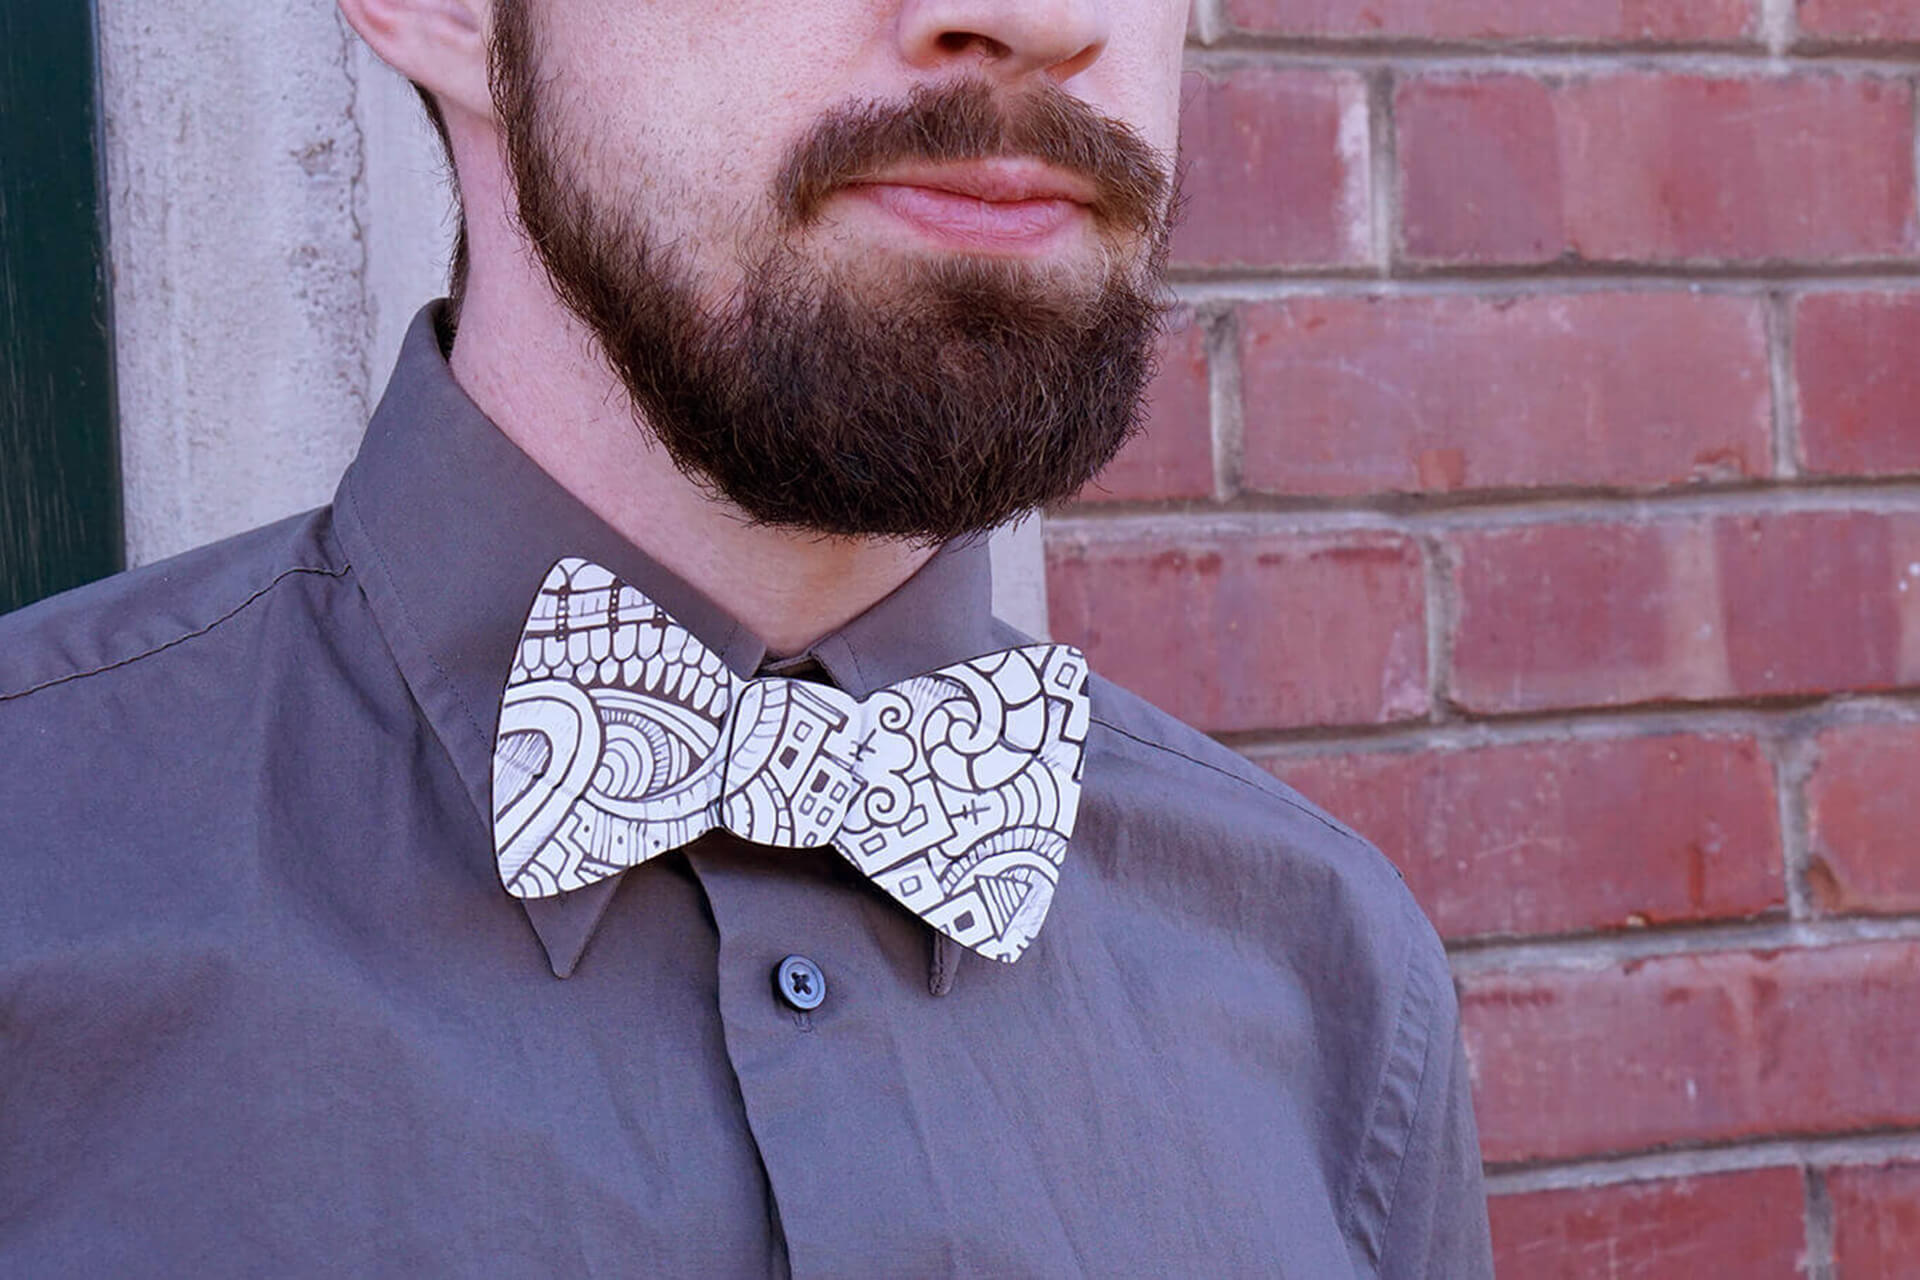 A lifestyle shot of the cardboard doodle bow tie